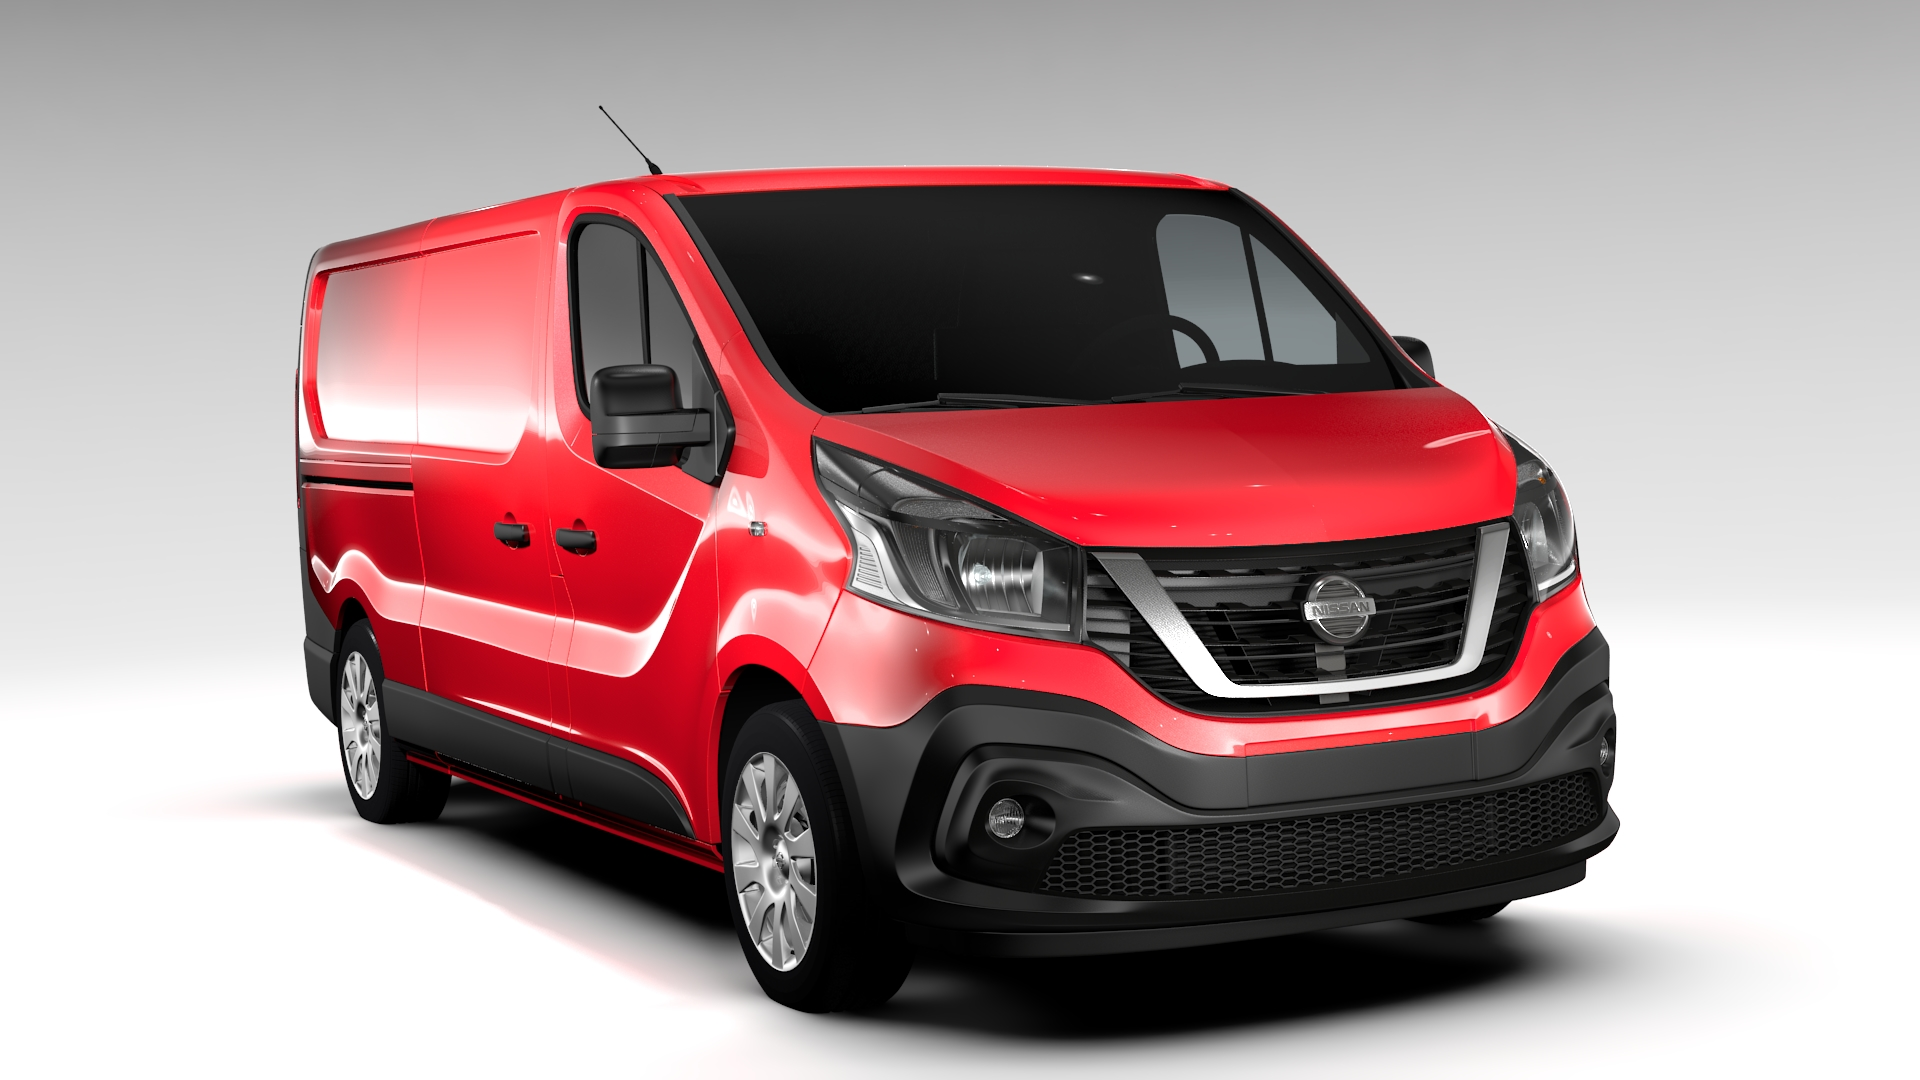 nissan nv300 van l2h1 2016 3d model 3ds max fbx c4d